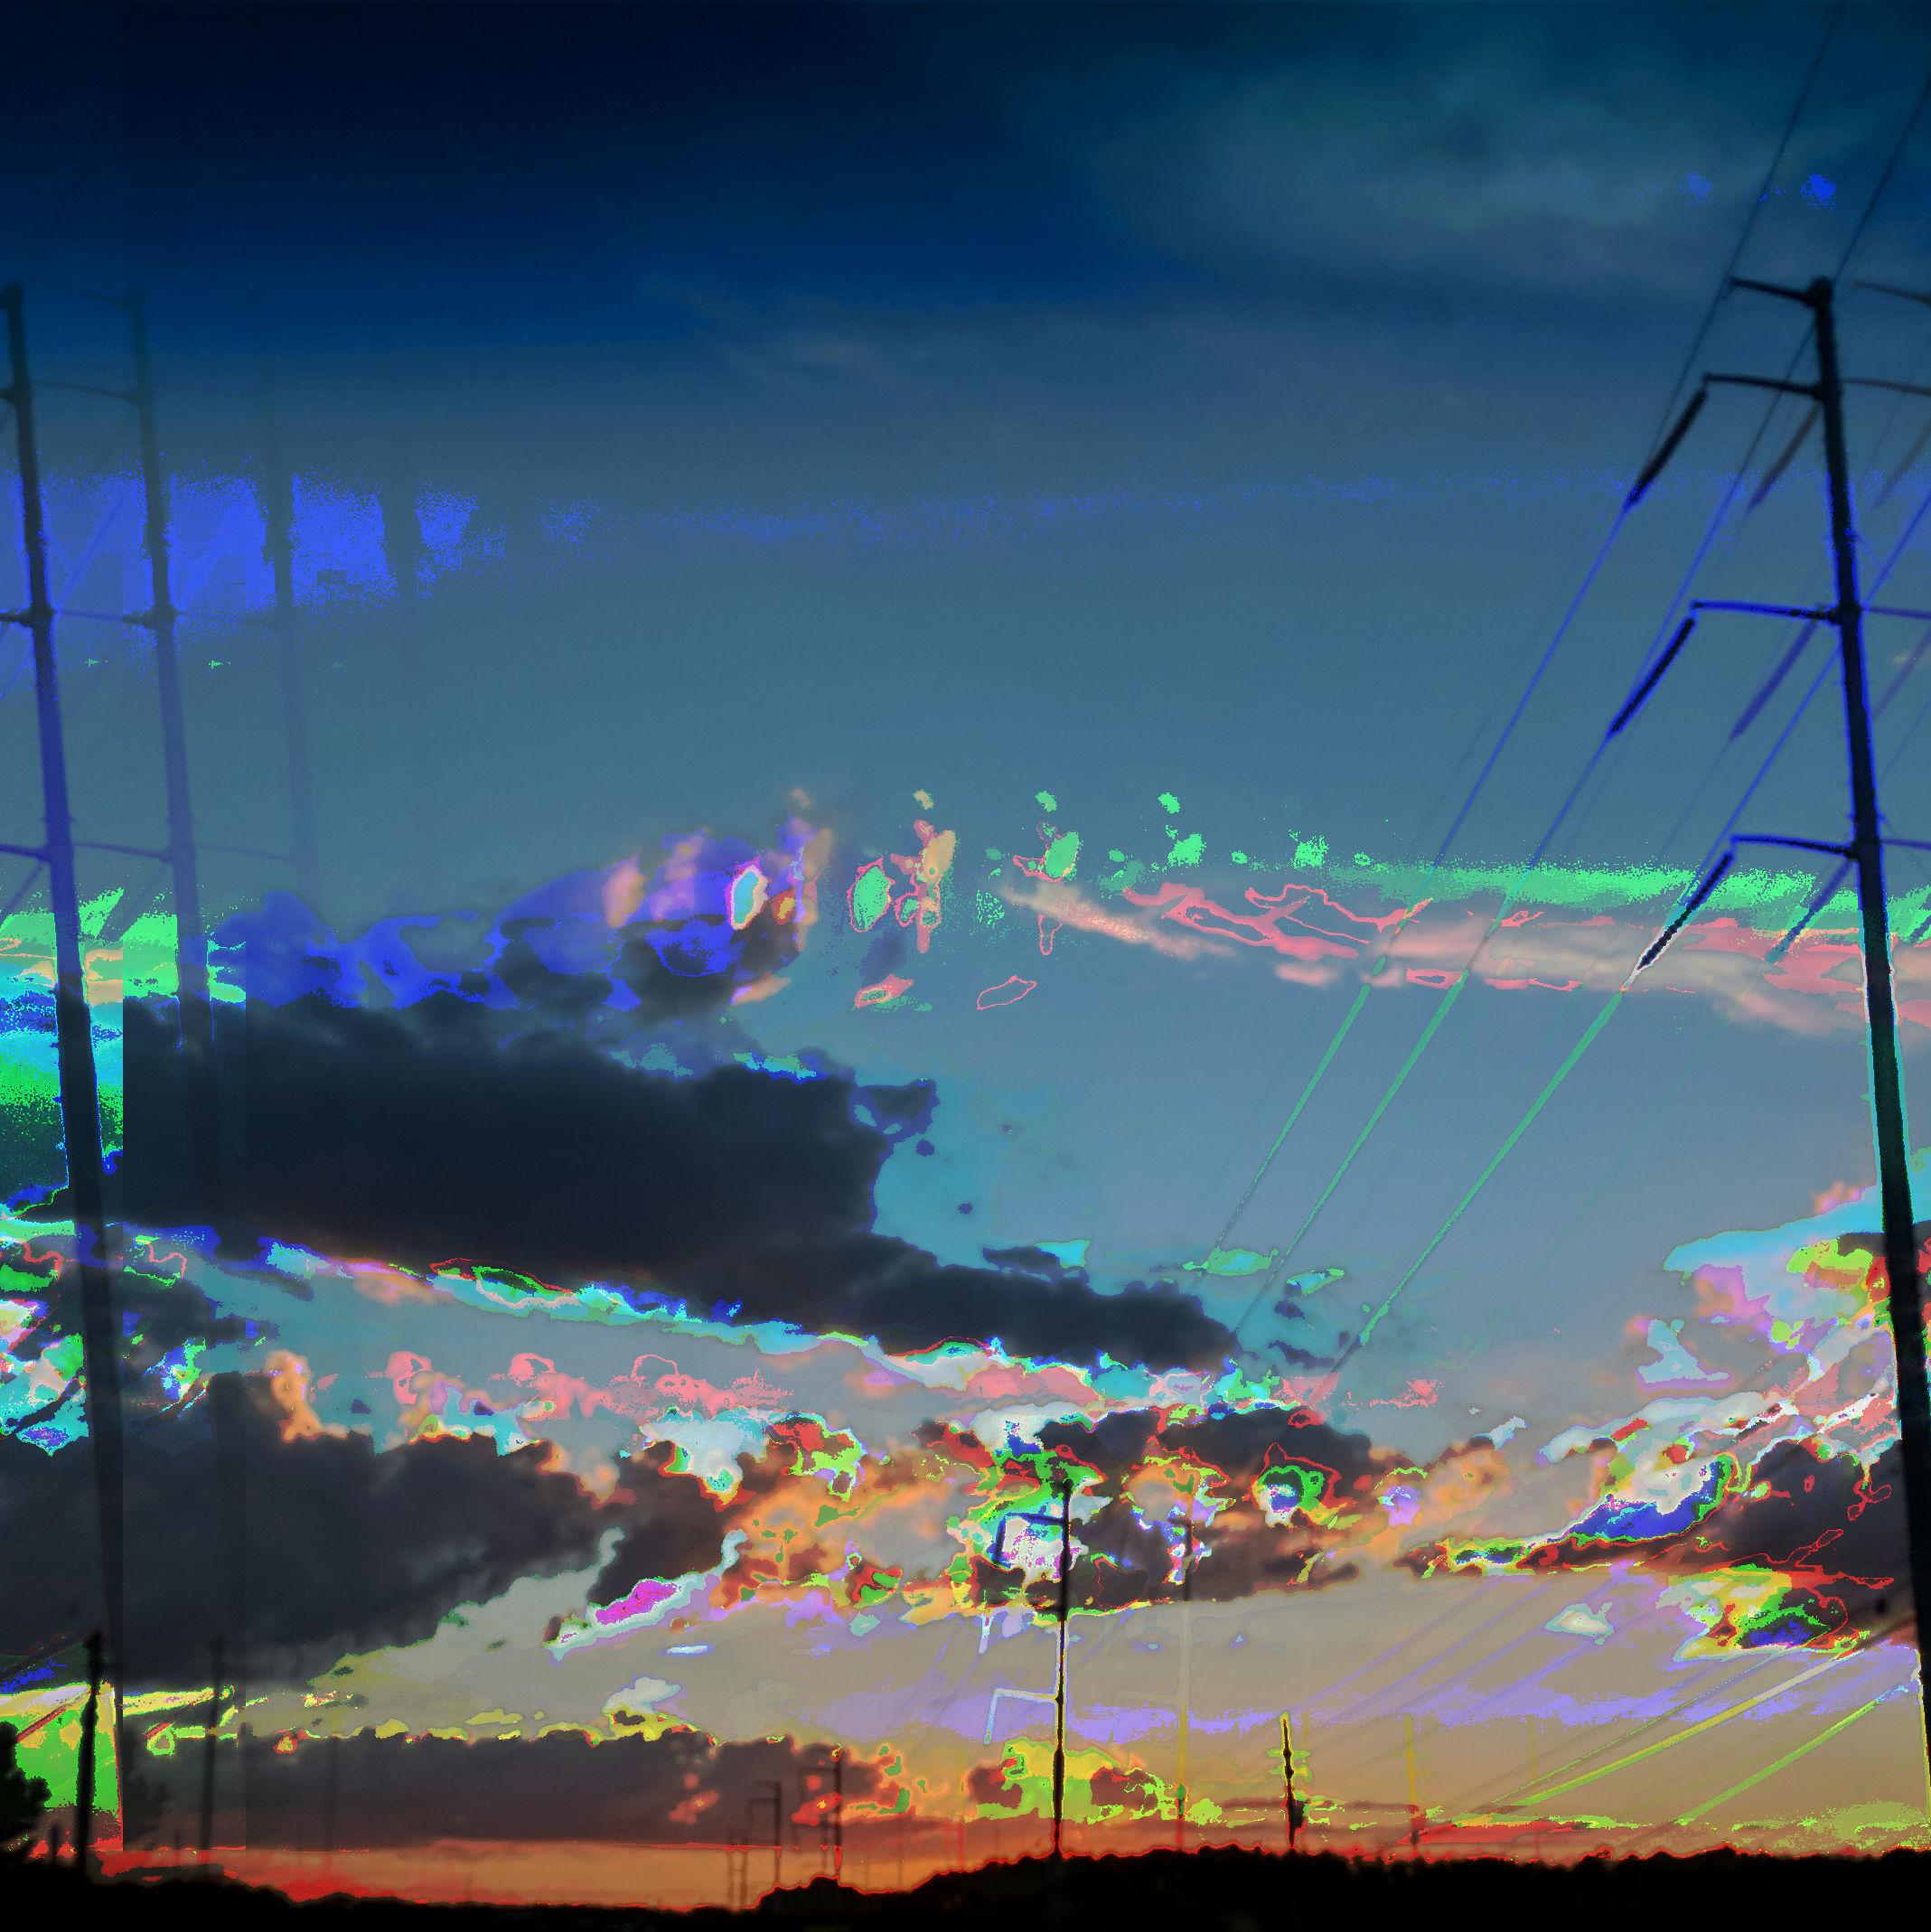 2 sets of powerlines are meeting the sunset in the horizon. A dark skyline of trees is visible. The extire image is distorted and covered in corrupted color